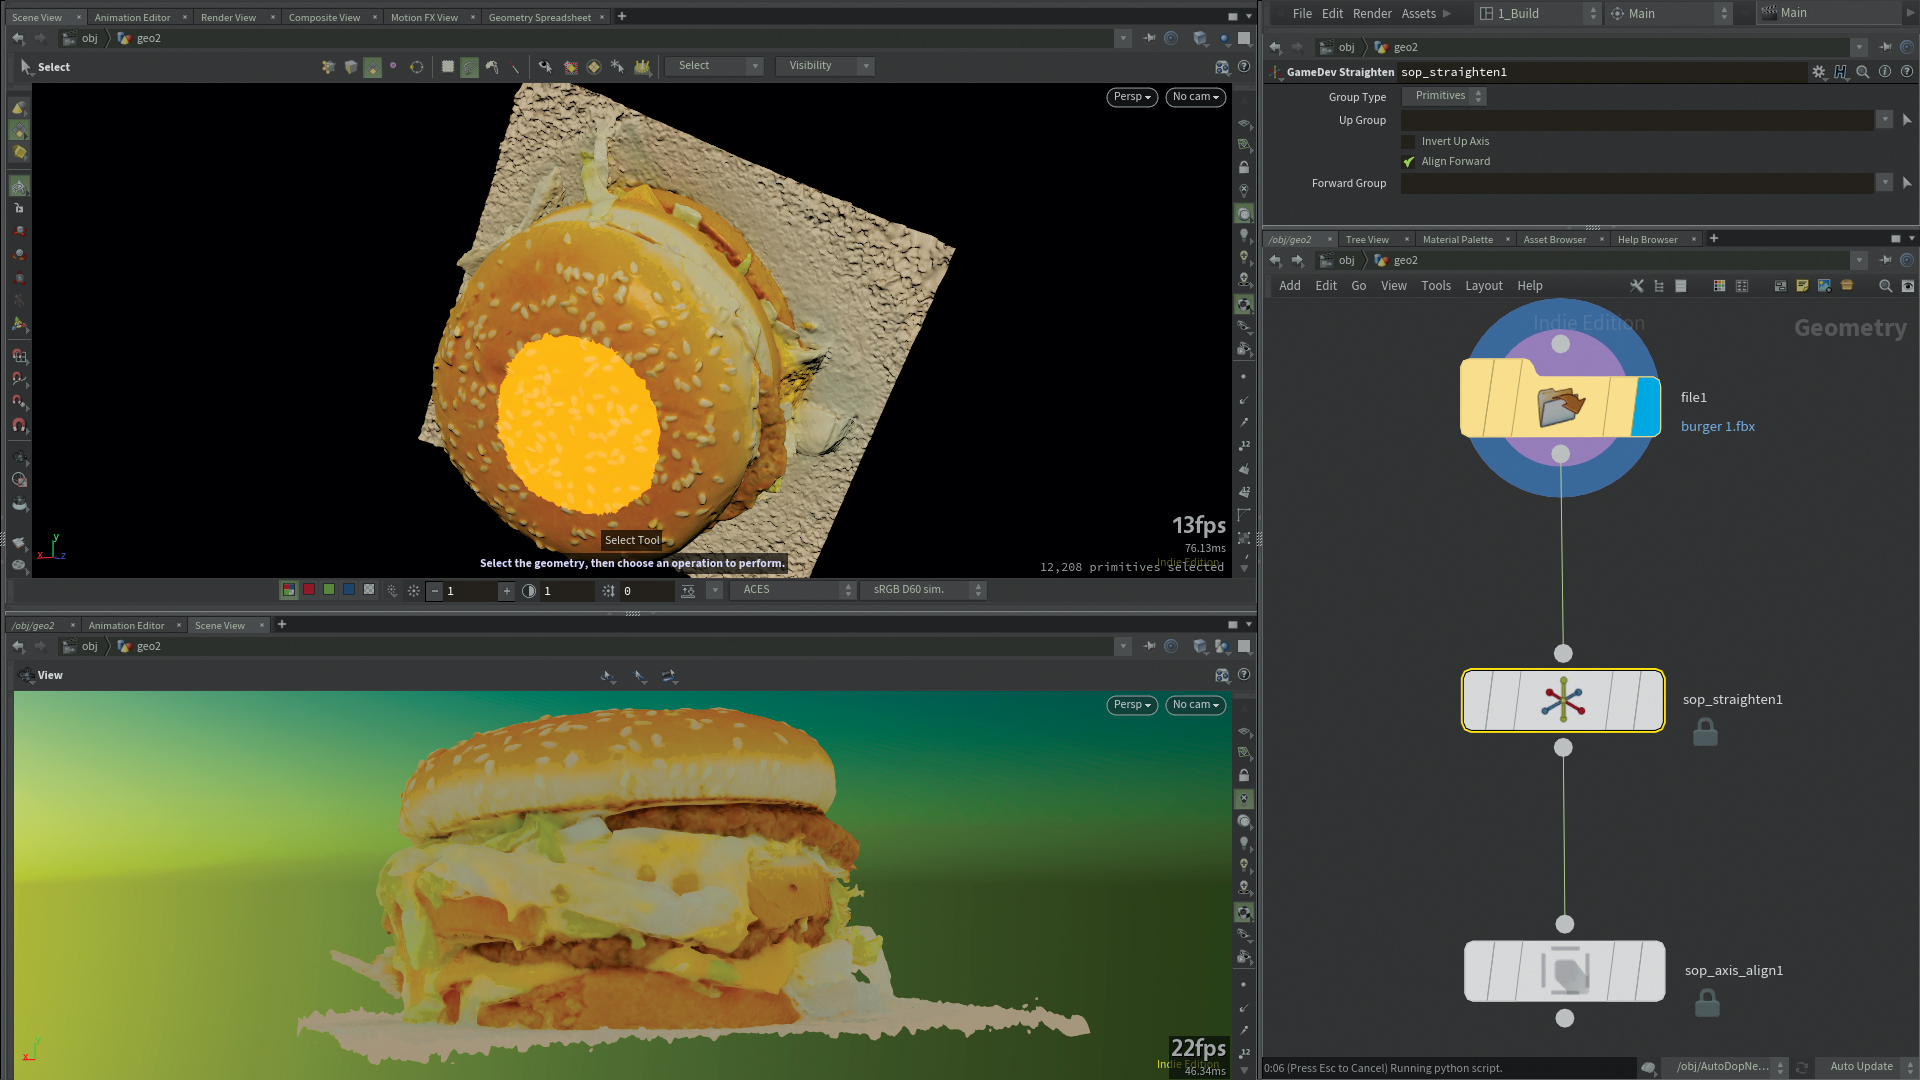 Houdini software: Tips and tricks for Houdini 17 5